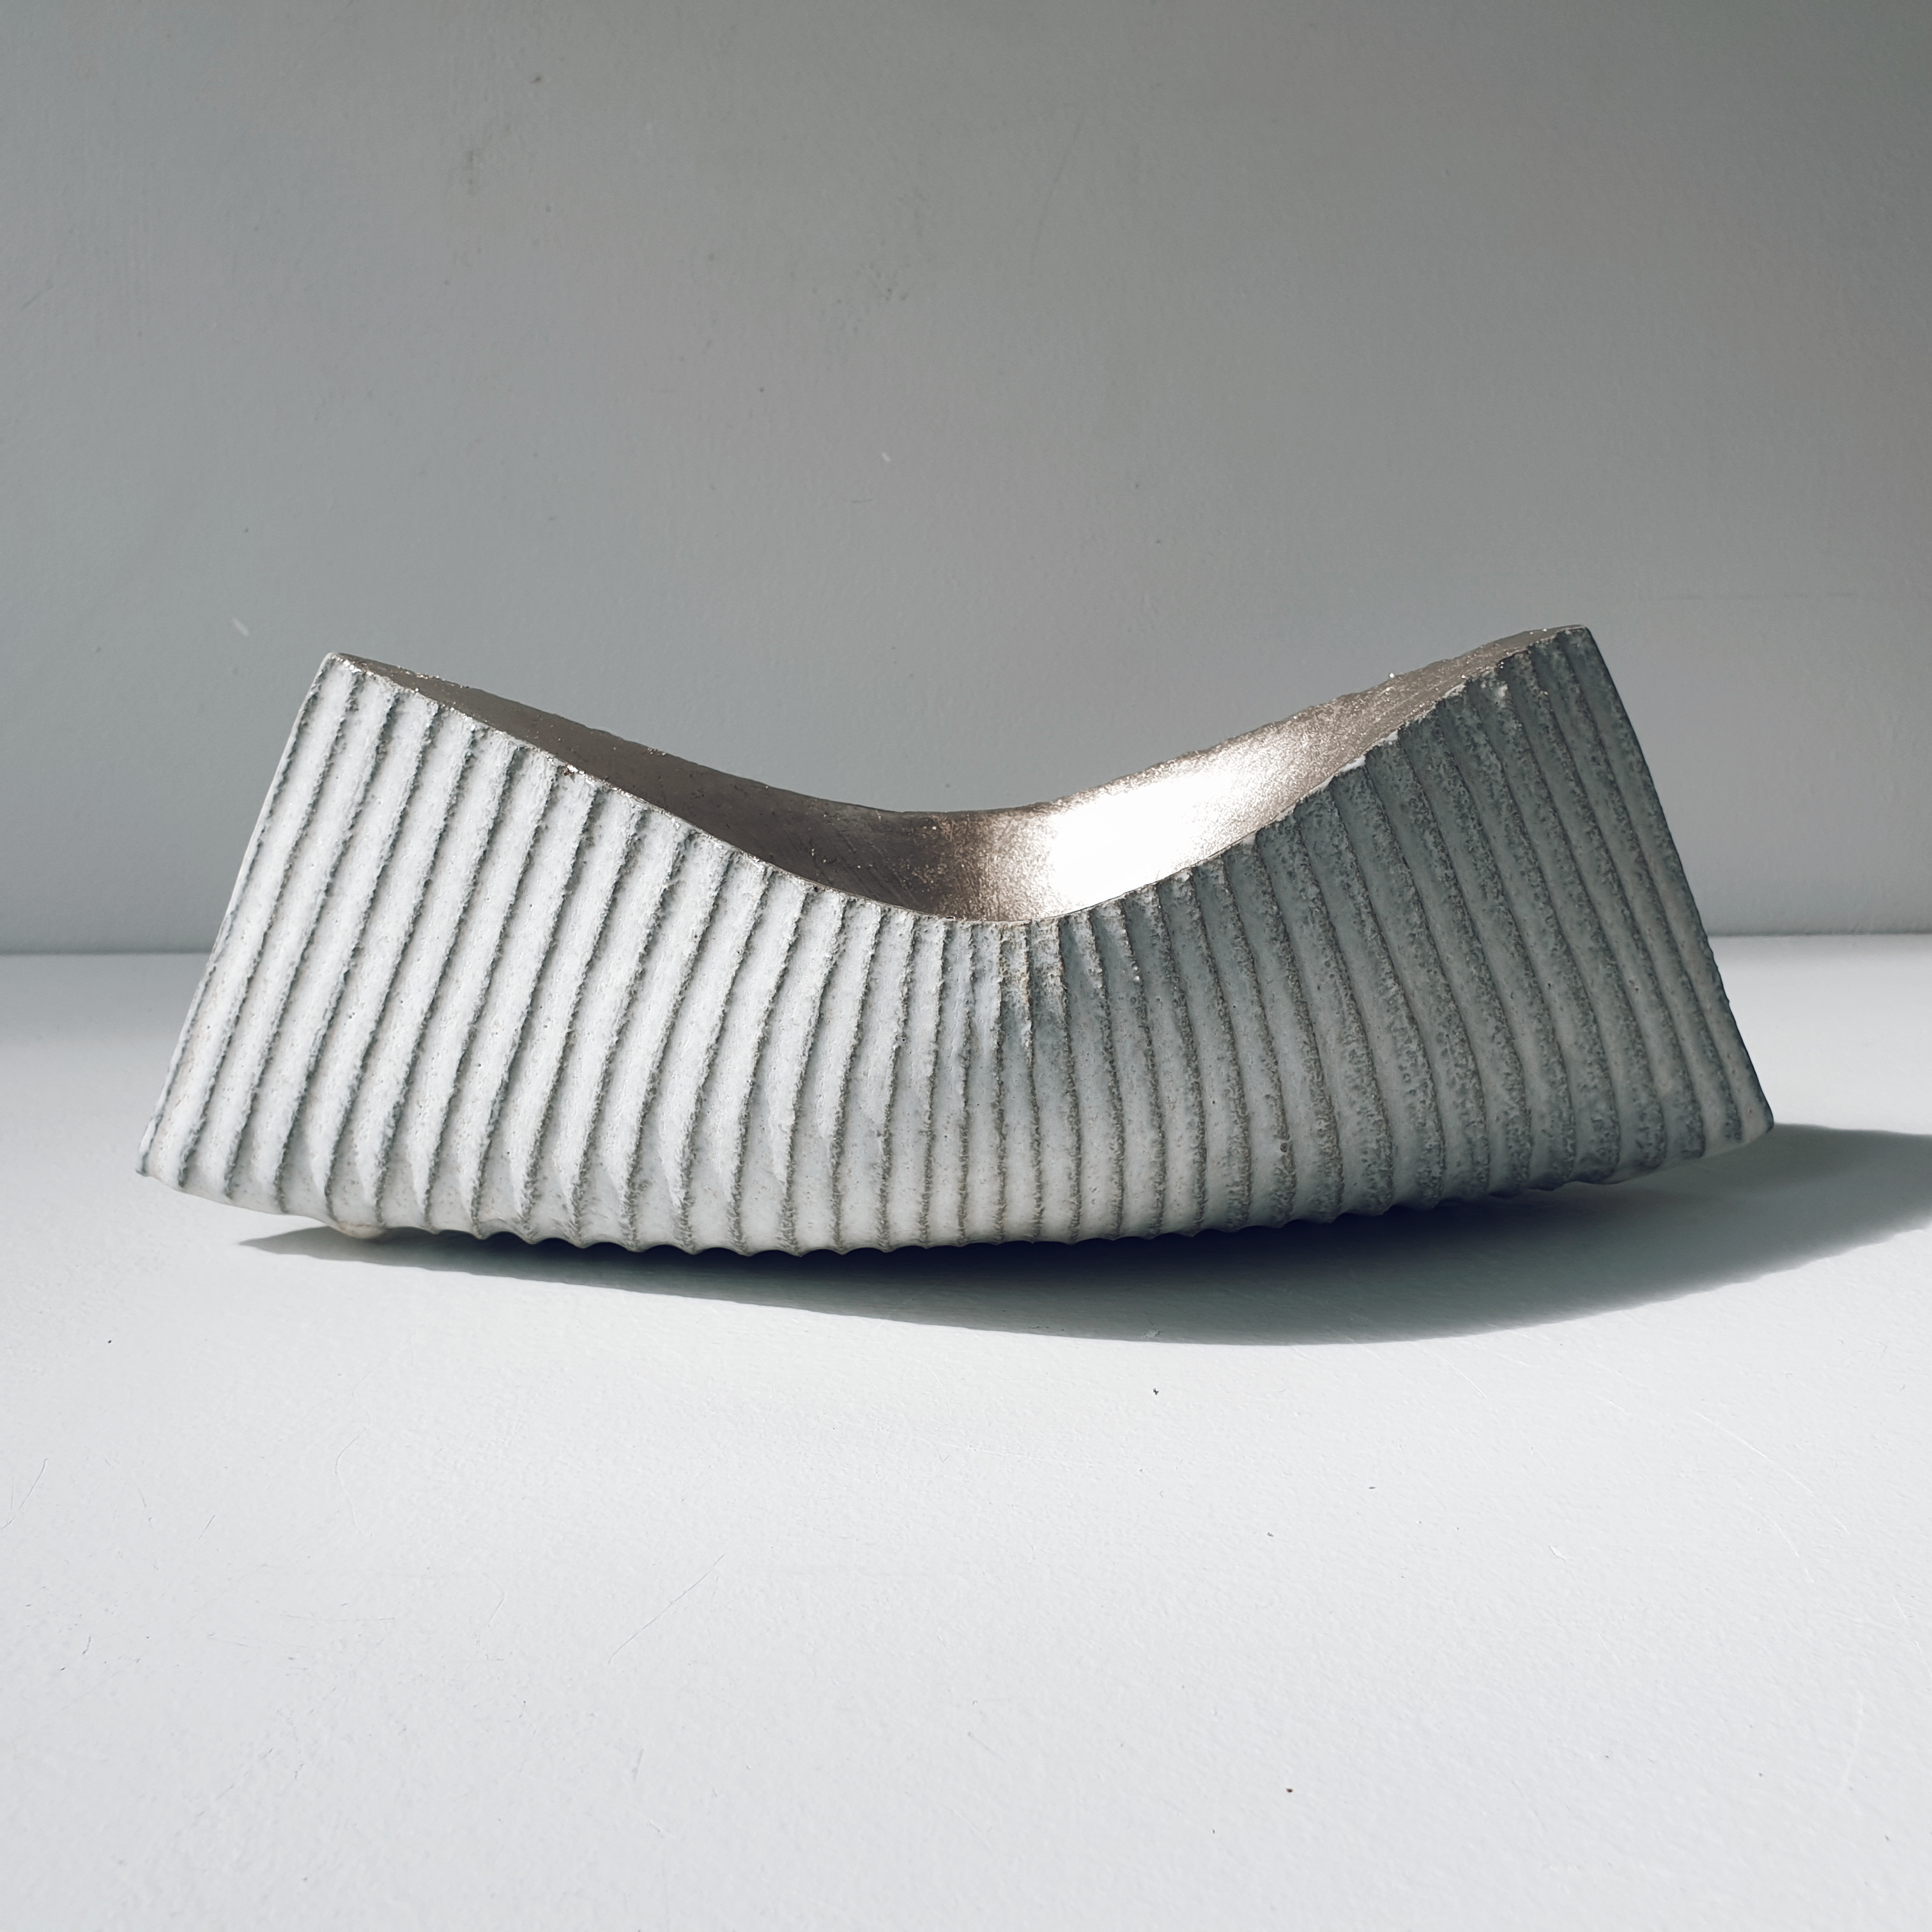 Michele Biaco. Drift Form (guilded)